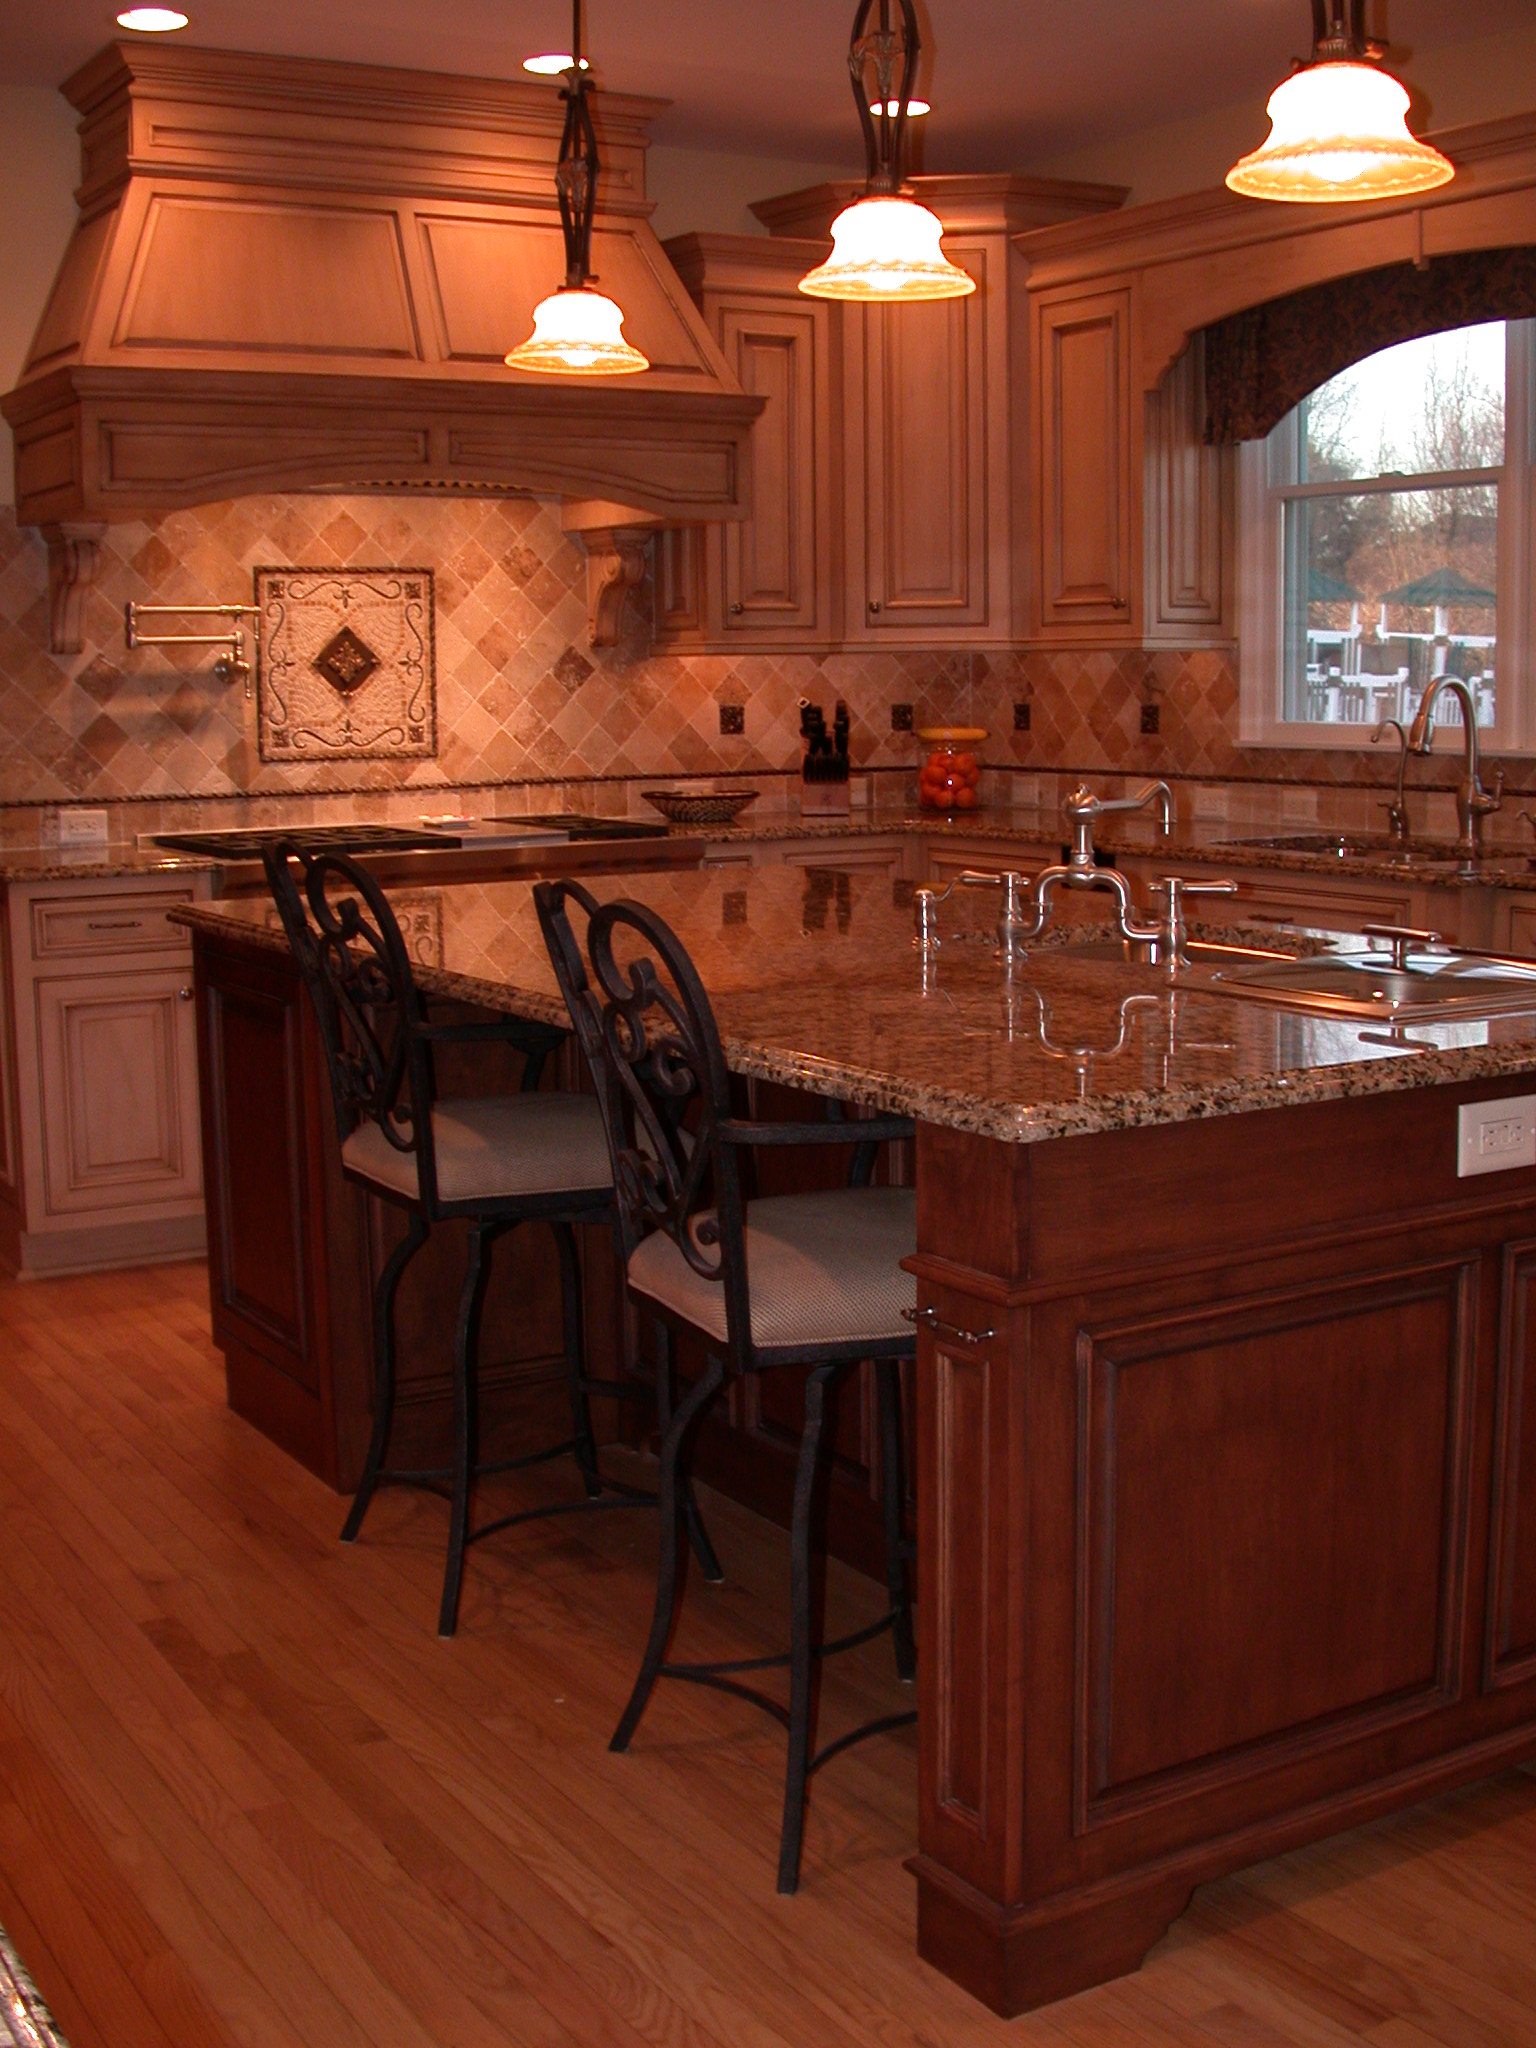 south jersey kitchen remodeling stainless steel accessories custom kitchens | amboy plumbing online showroom